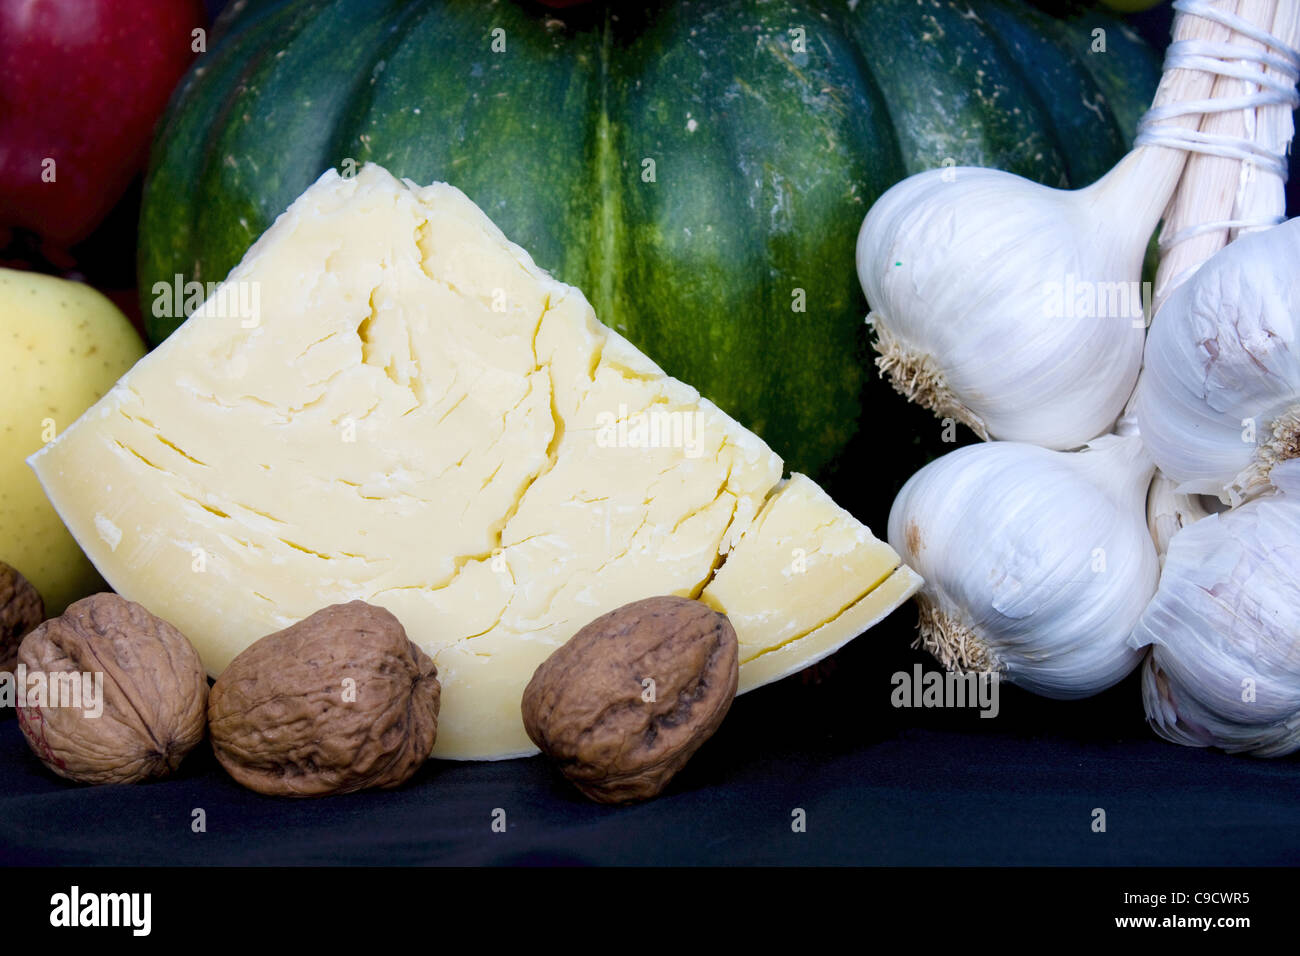 Food Ingredients - Closeup of piece of cheese with pumpkin, garlic and nuts. - Stock Image